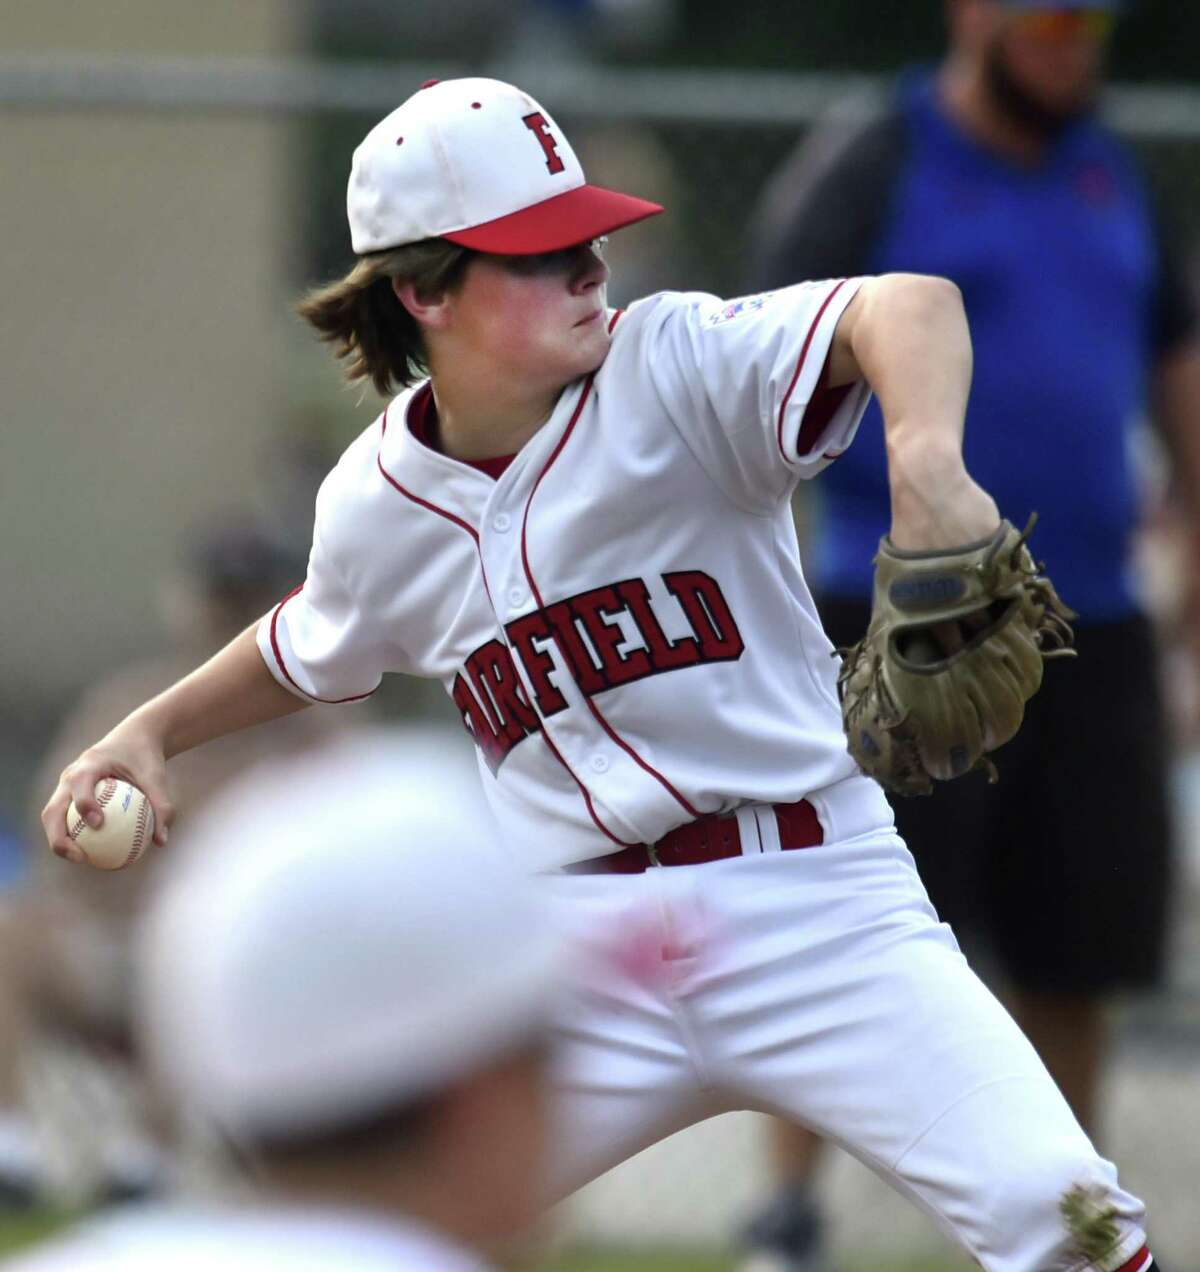 East Lyme, Connecticut - Friday, July 27, 2018: Pierce Cowles of Fairfield American pitches against Manchester Little League during fourth inning of the winners bracket of the Little League State playoffs Friday evening at Presidents Field in East Lyme. Fairfield American defeated Manchester 4-1.